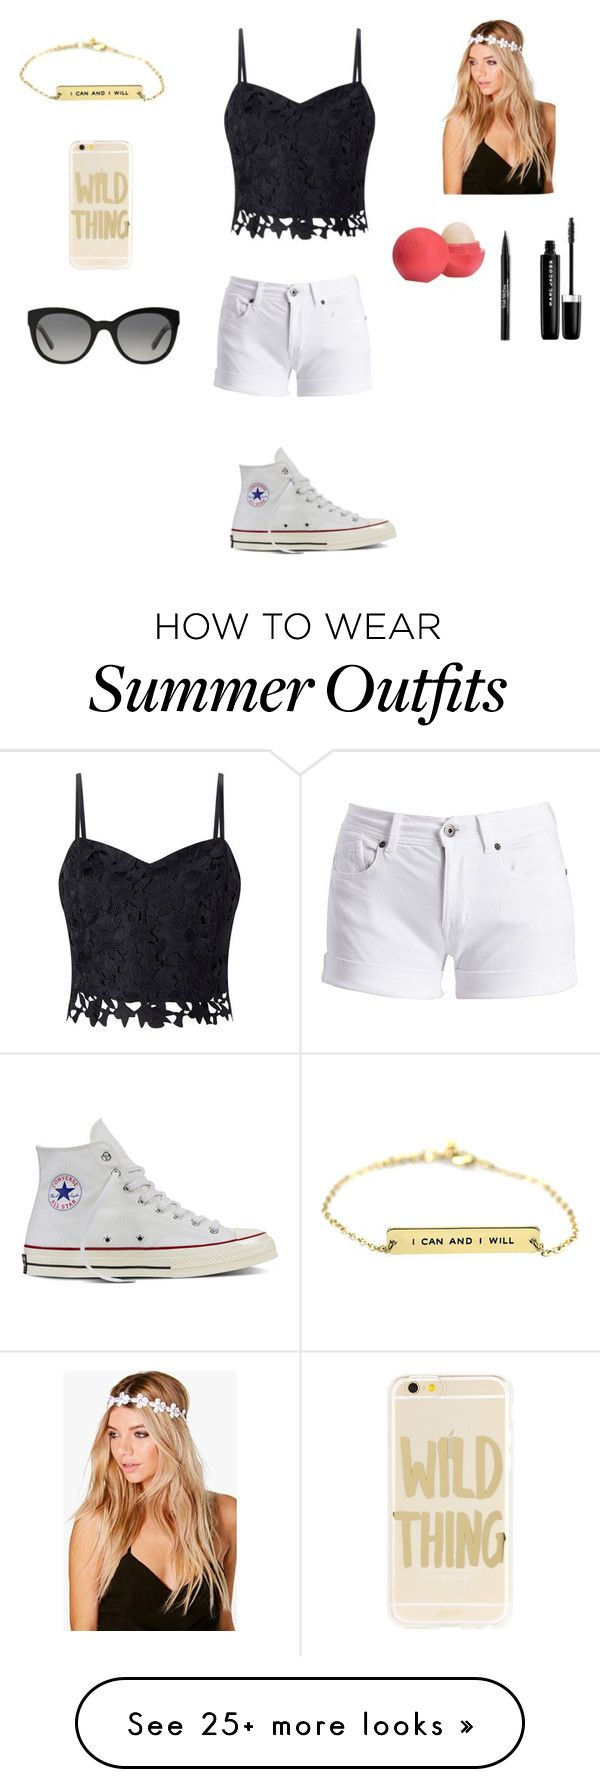 """Summer outfit"" by stuff4mm on Polyvore featuring Lipsy, Barbour International, Converse, Boohoo, Sonix, Burberry, Eos, Trish McEvoy and Marc Jacobs"